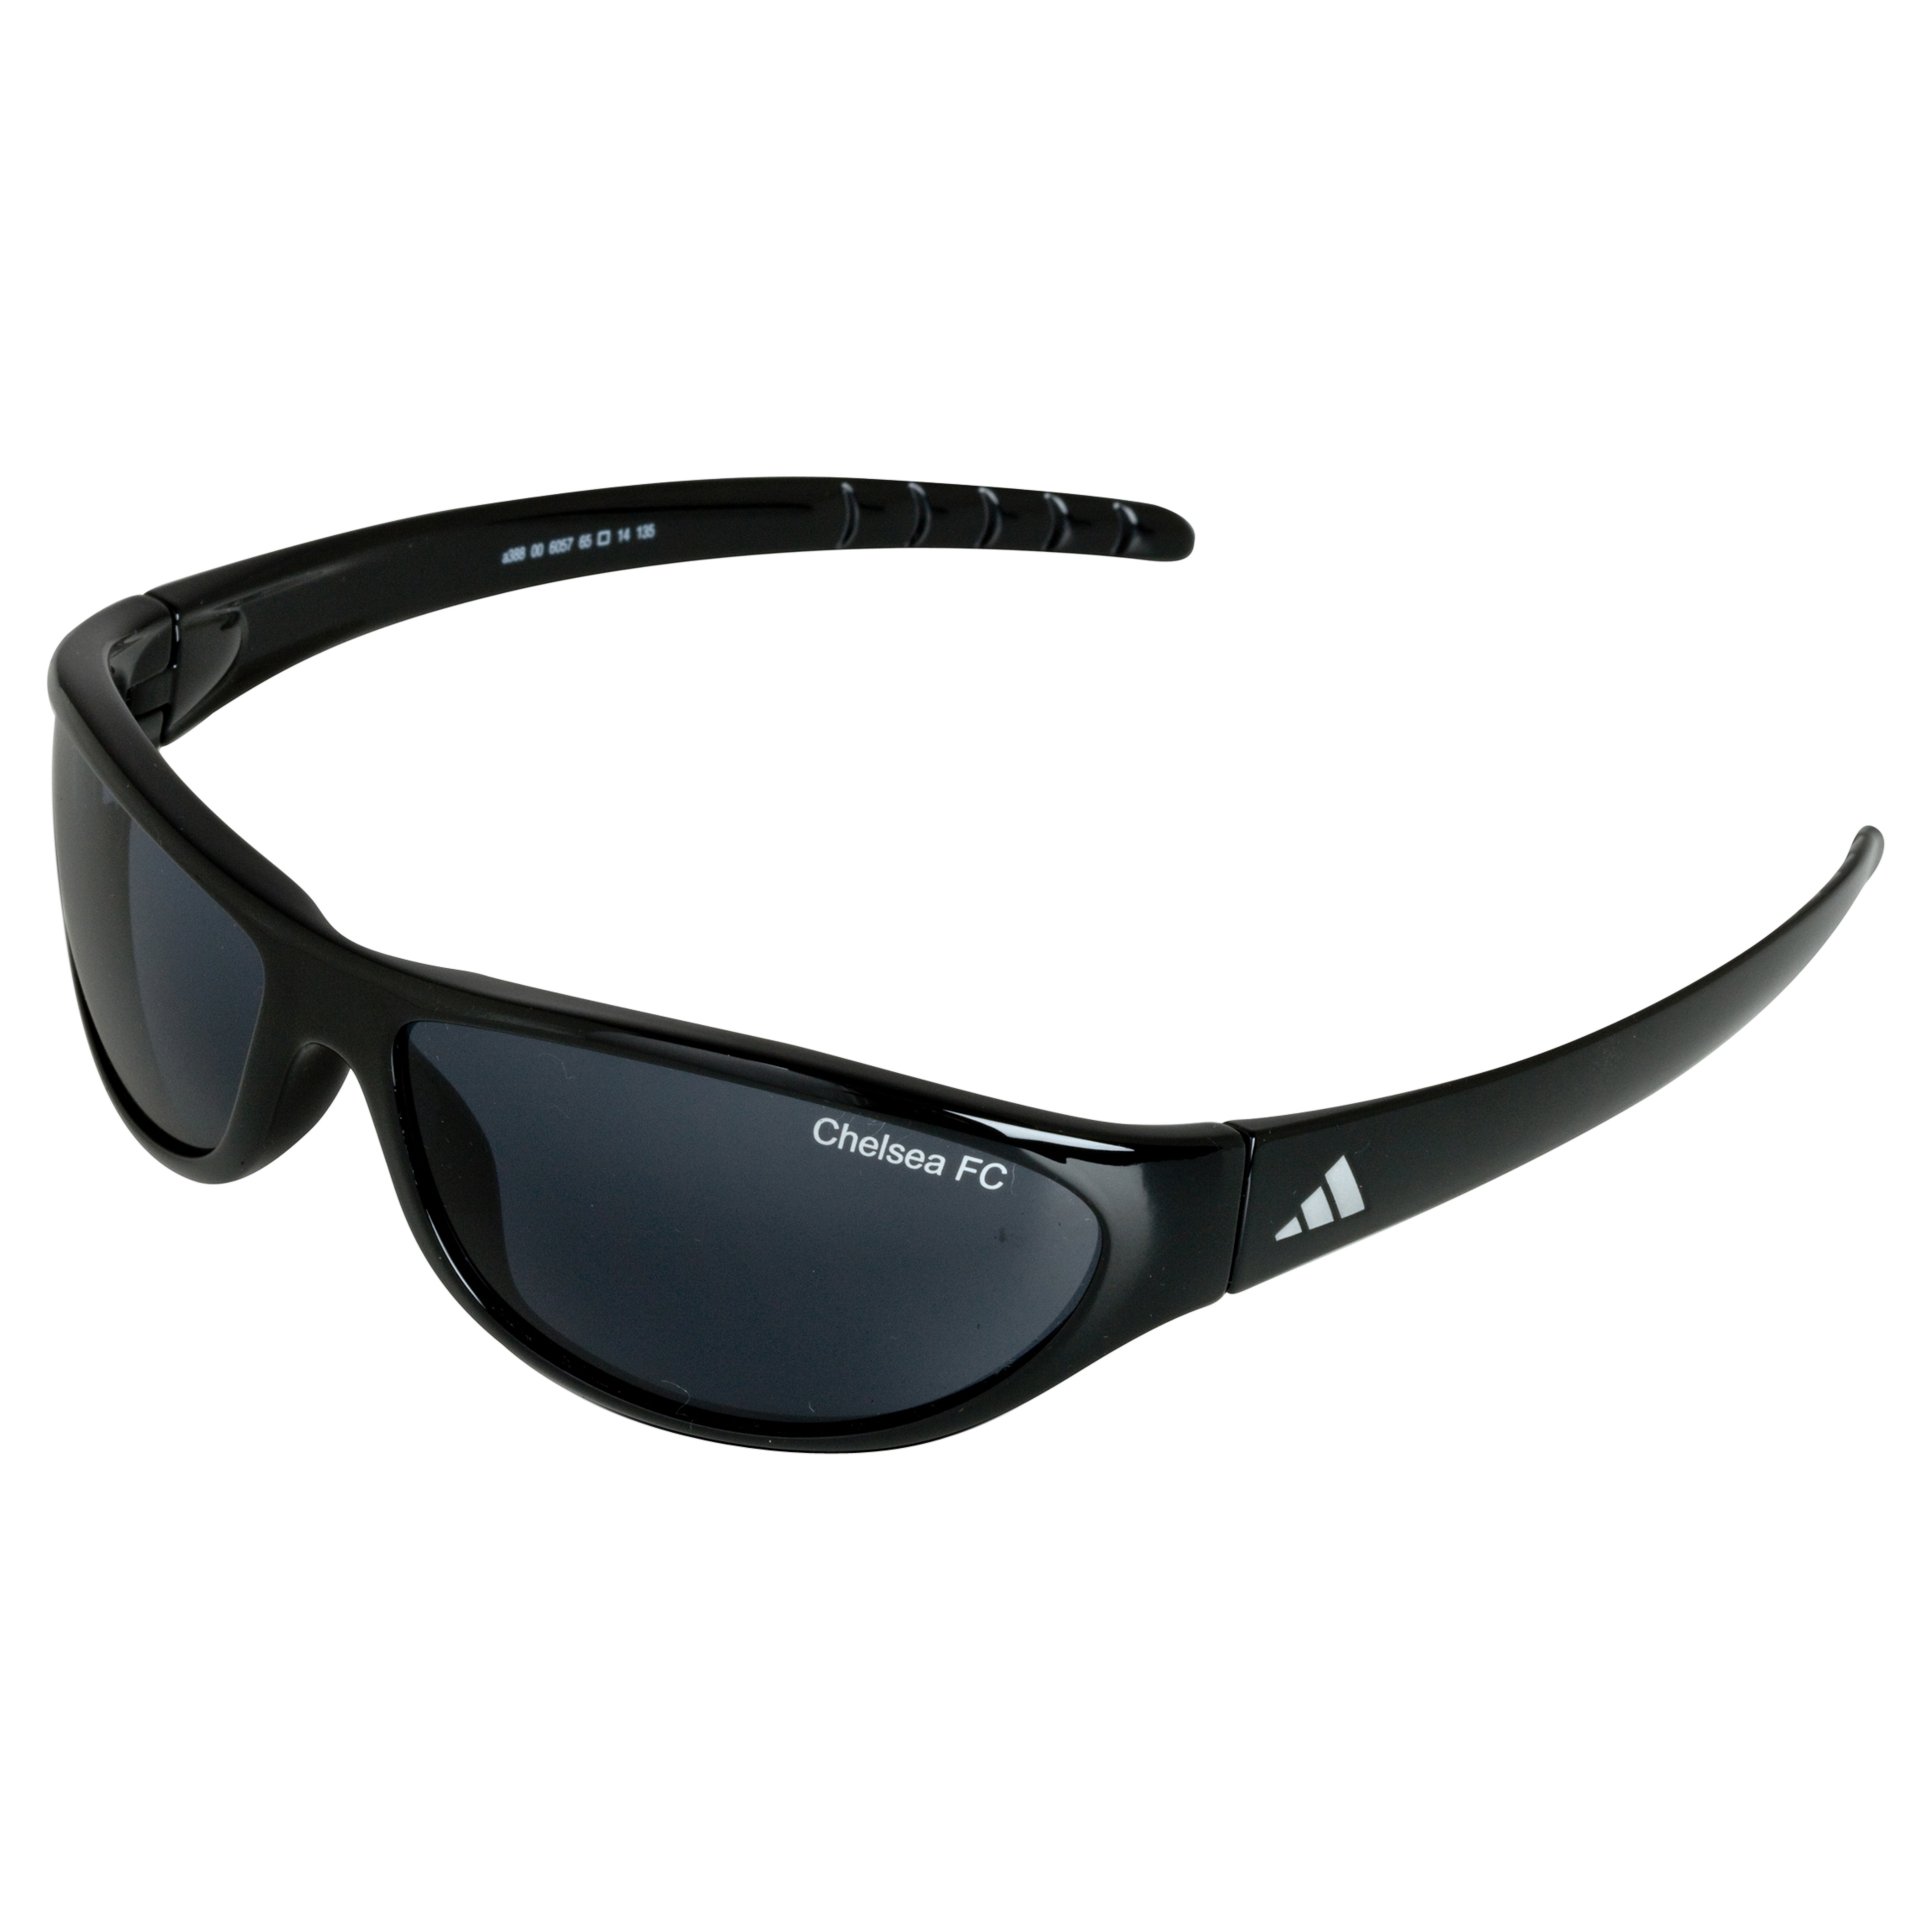 Chelsea Nalou adidas Sunglasses - Shiny Black